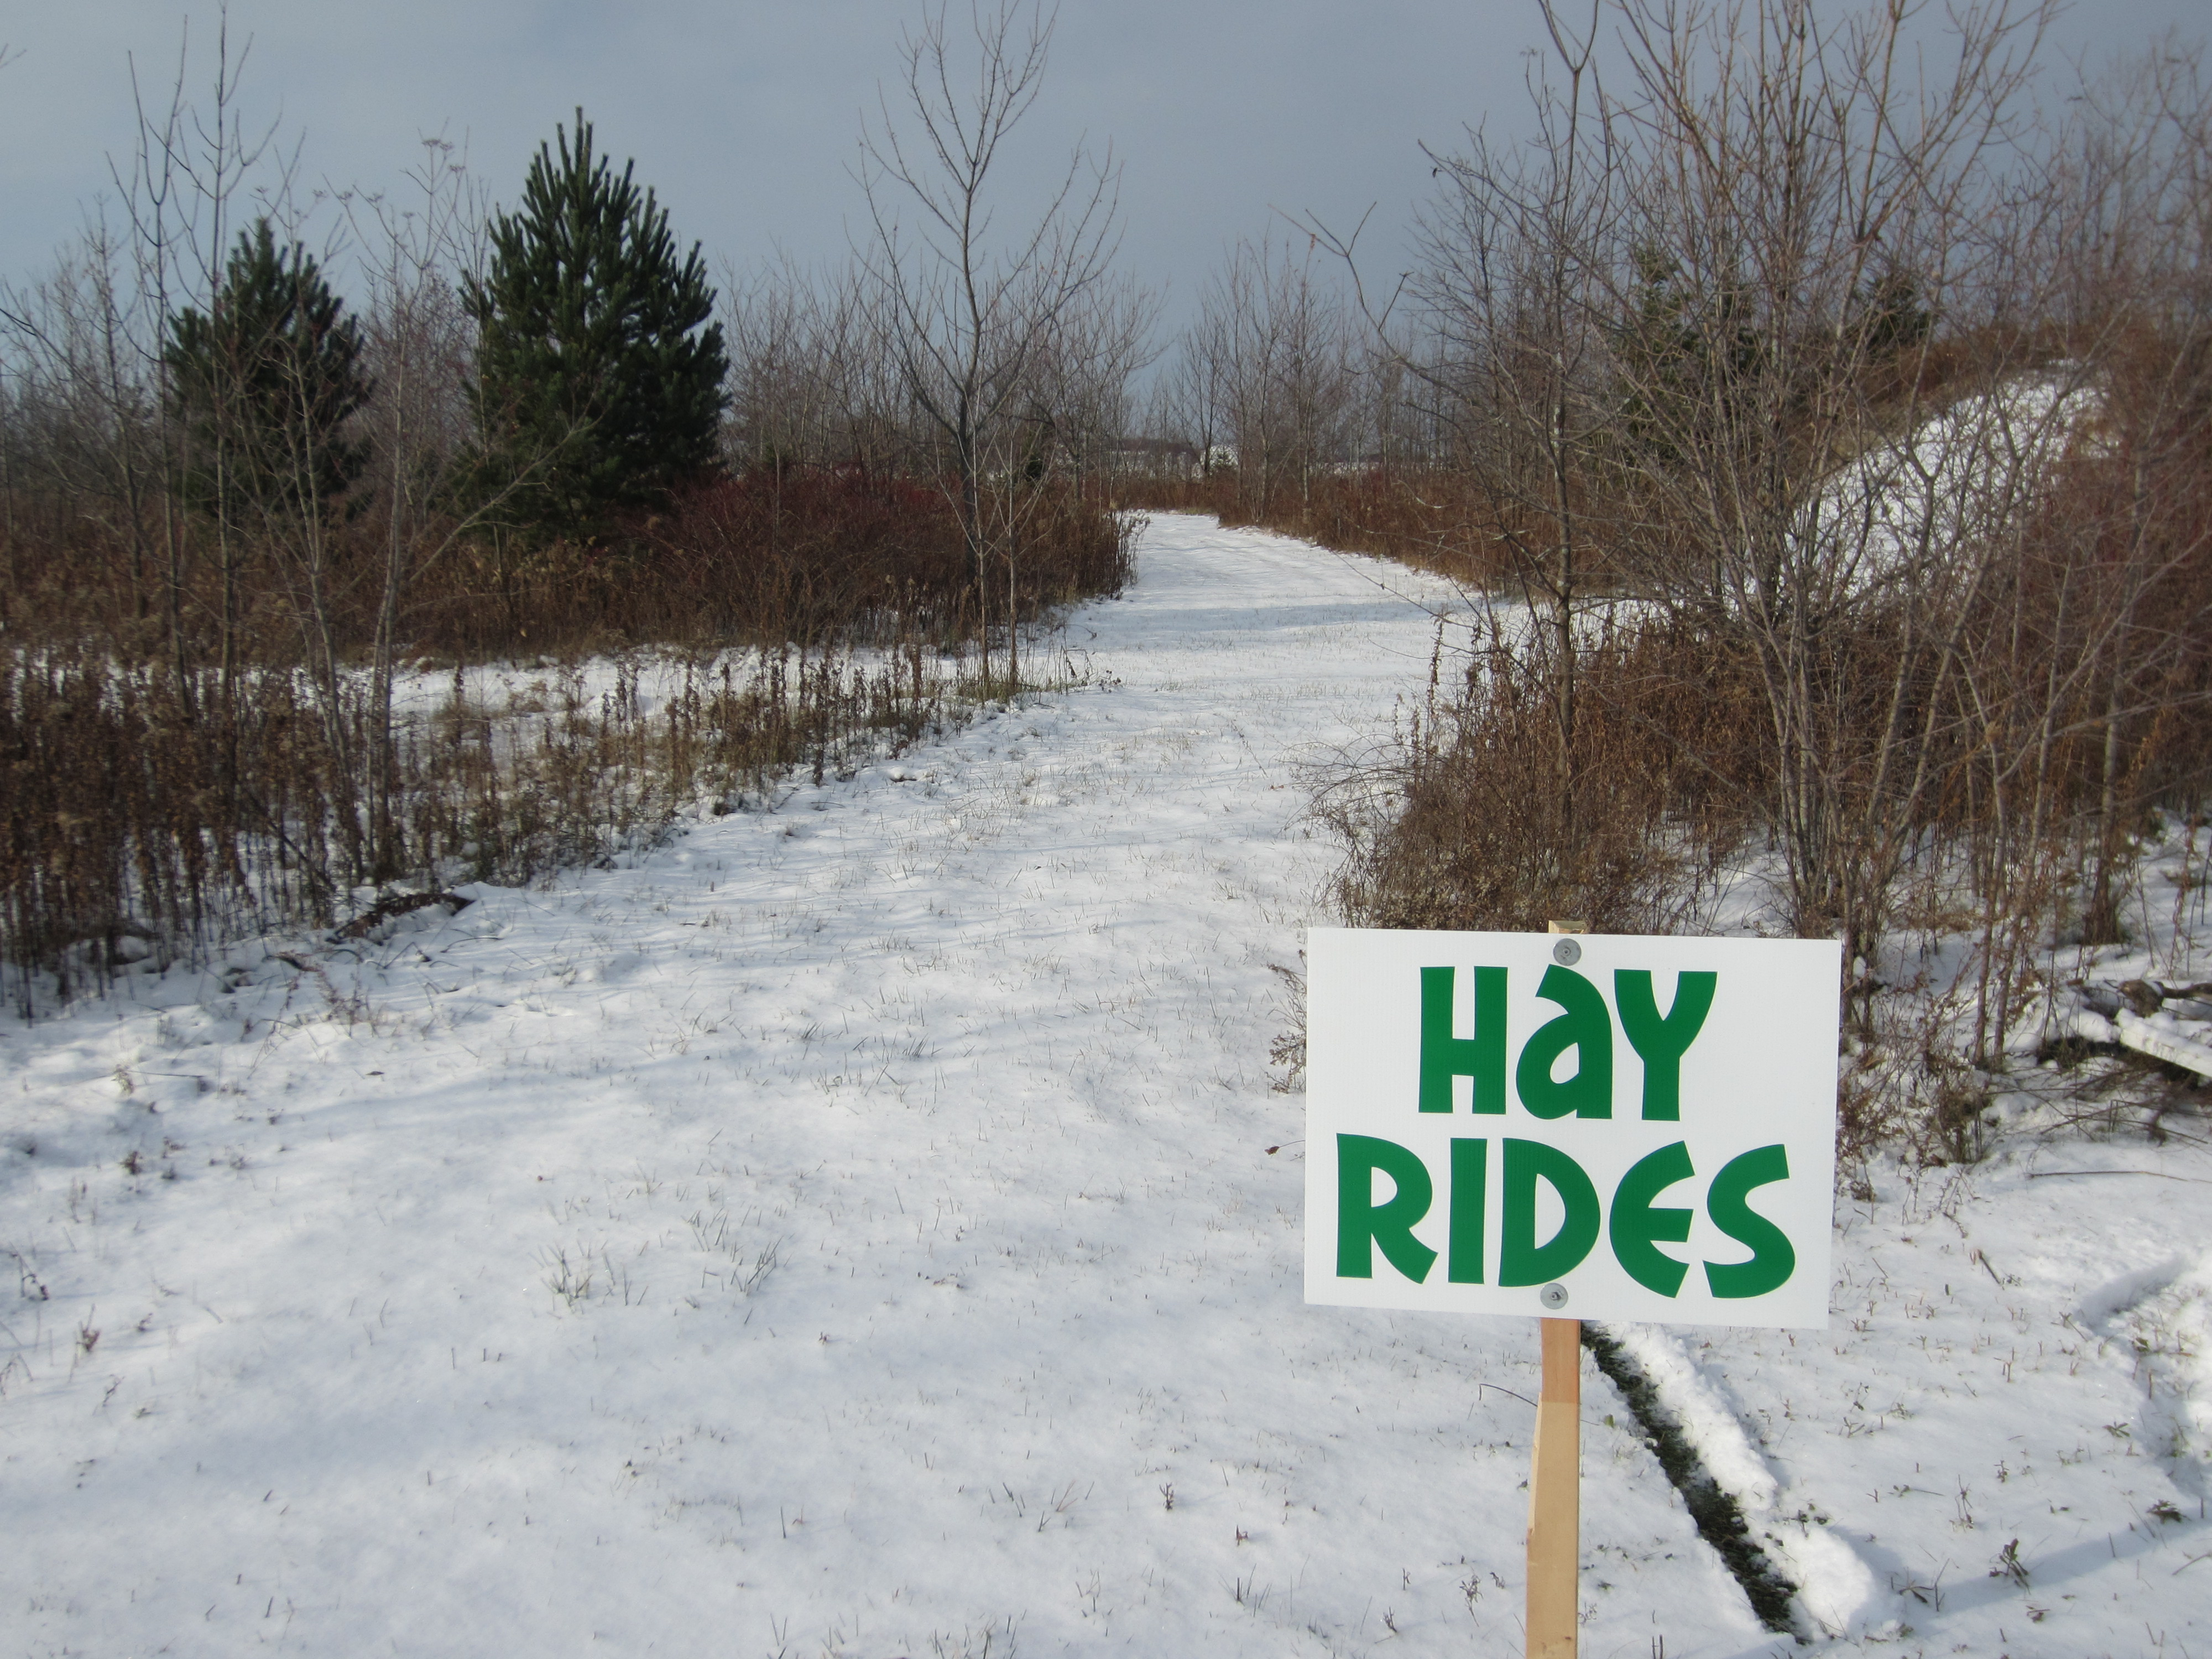 Enjoy our nature trails